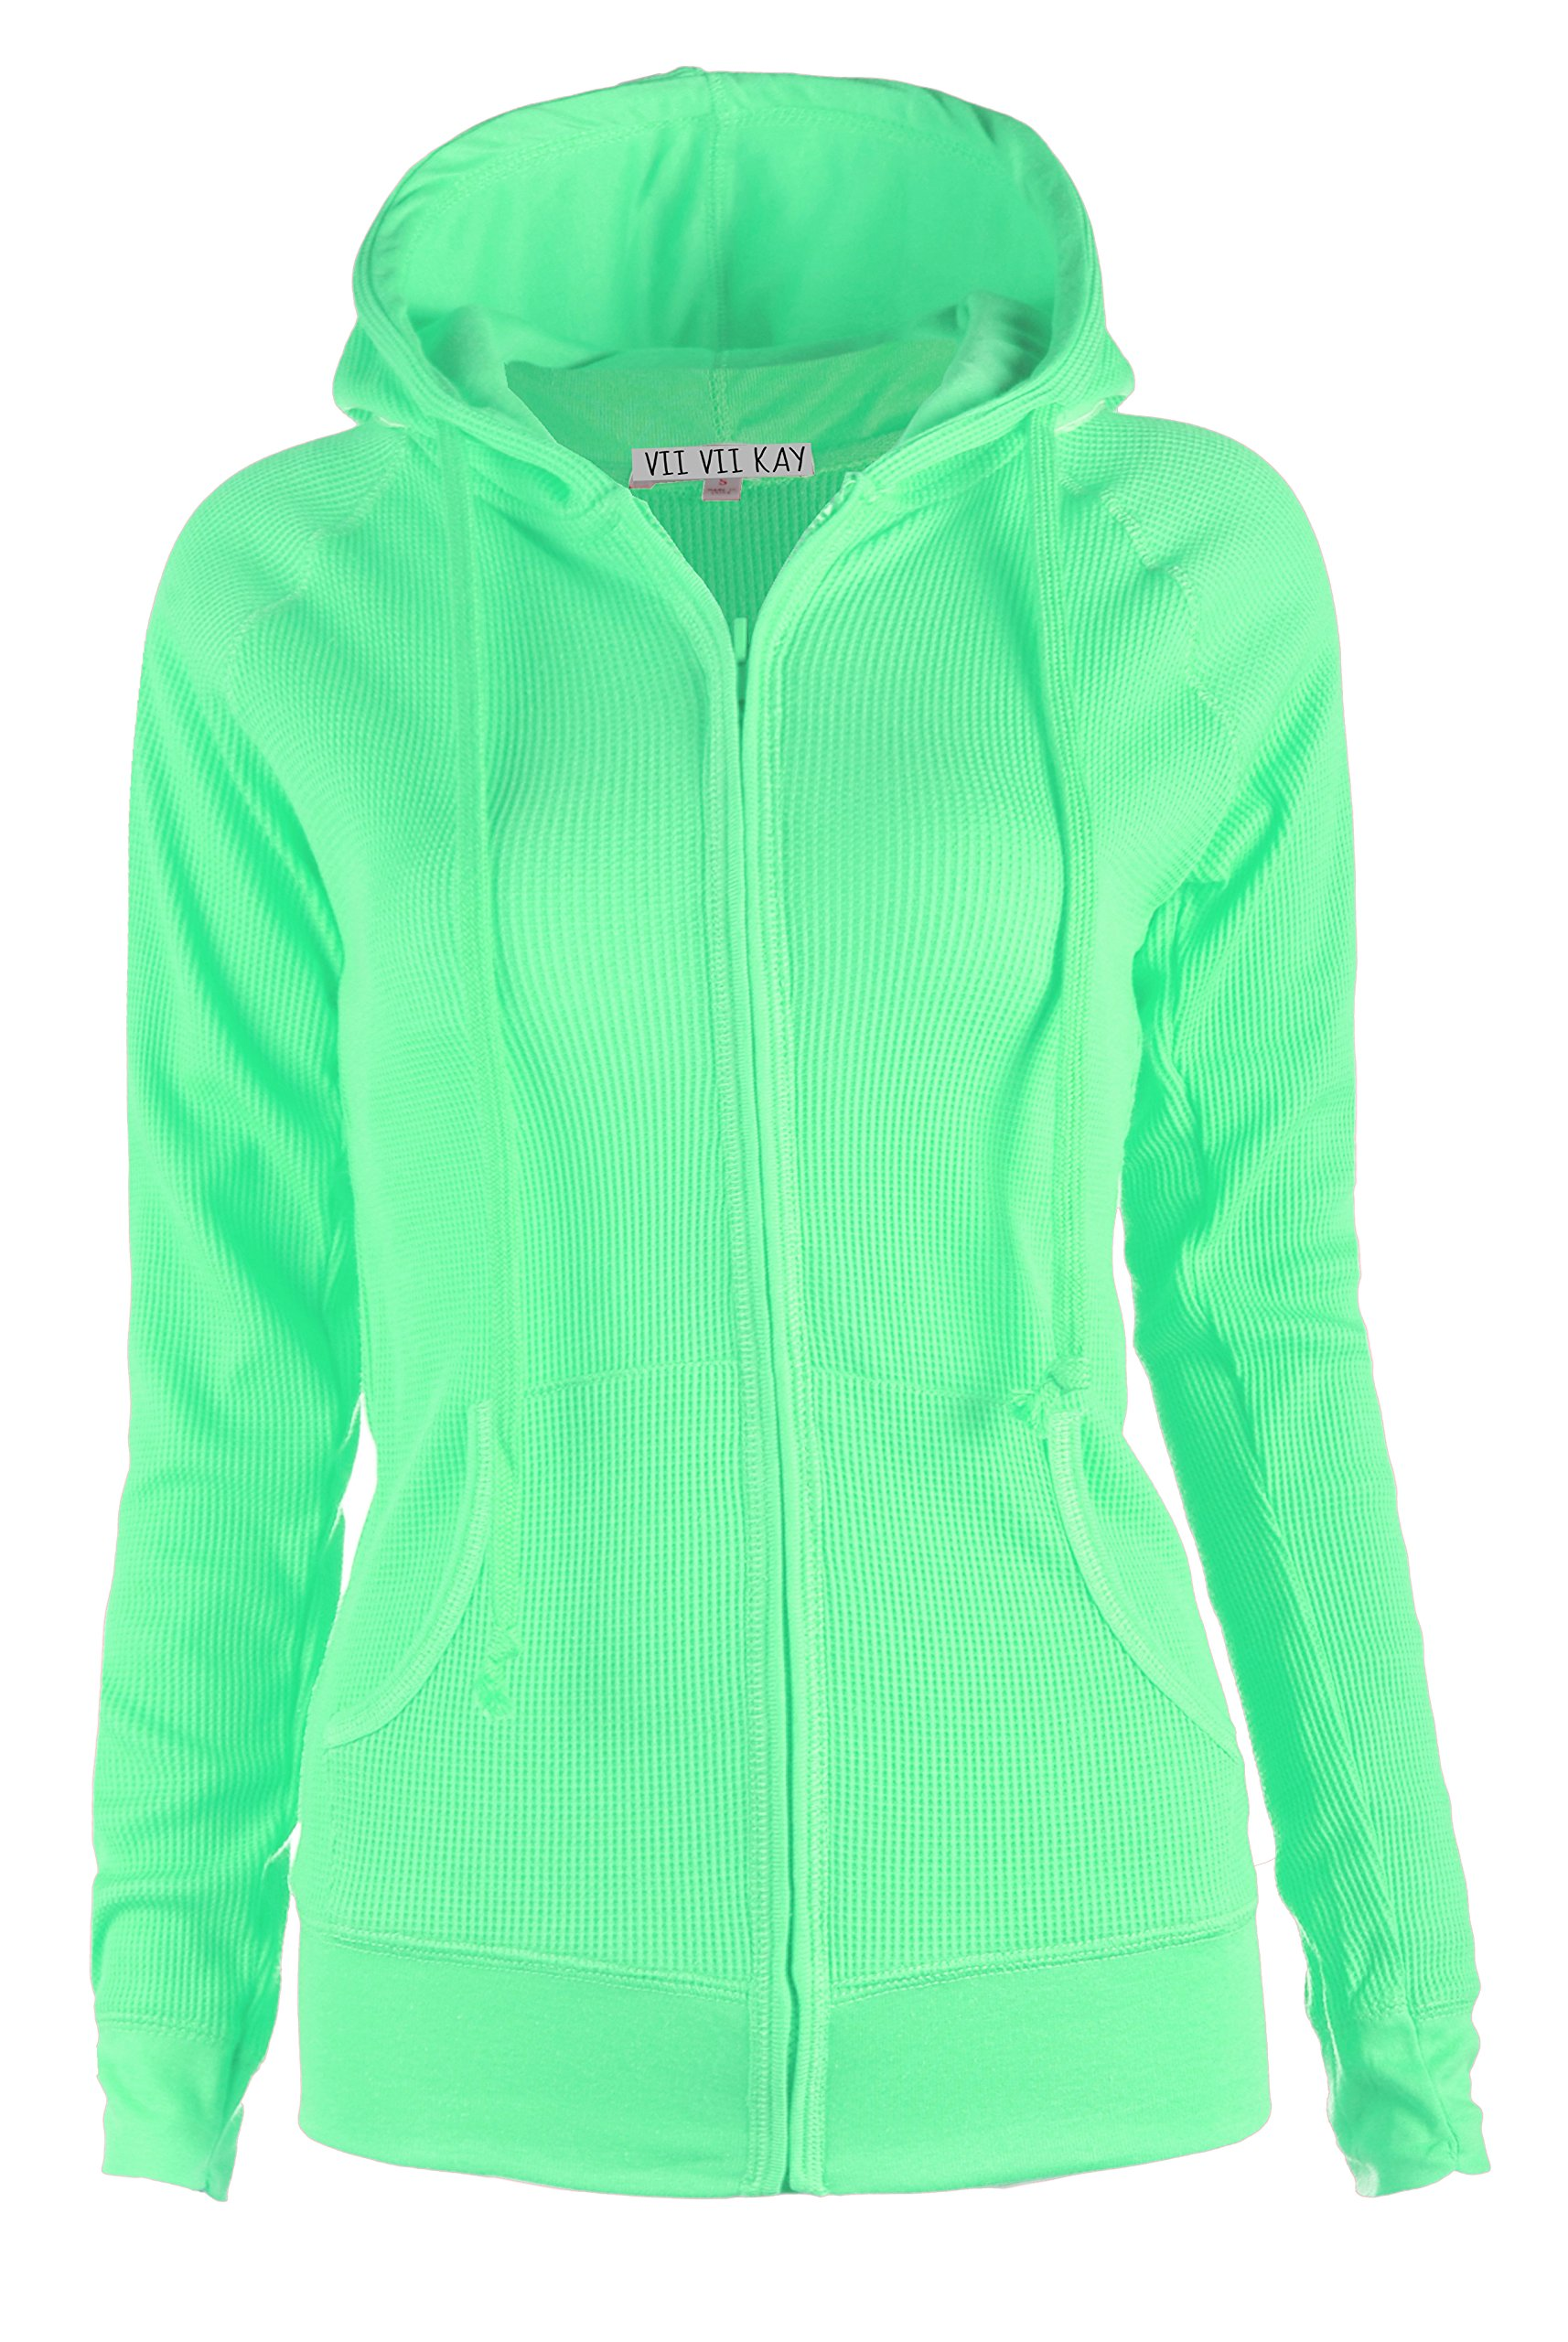 ViiViiKay Womens Casual Plain or Thermal Knitted Solid Zip-Up Hoodie Jacket  MINT M Apparel add1383d3